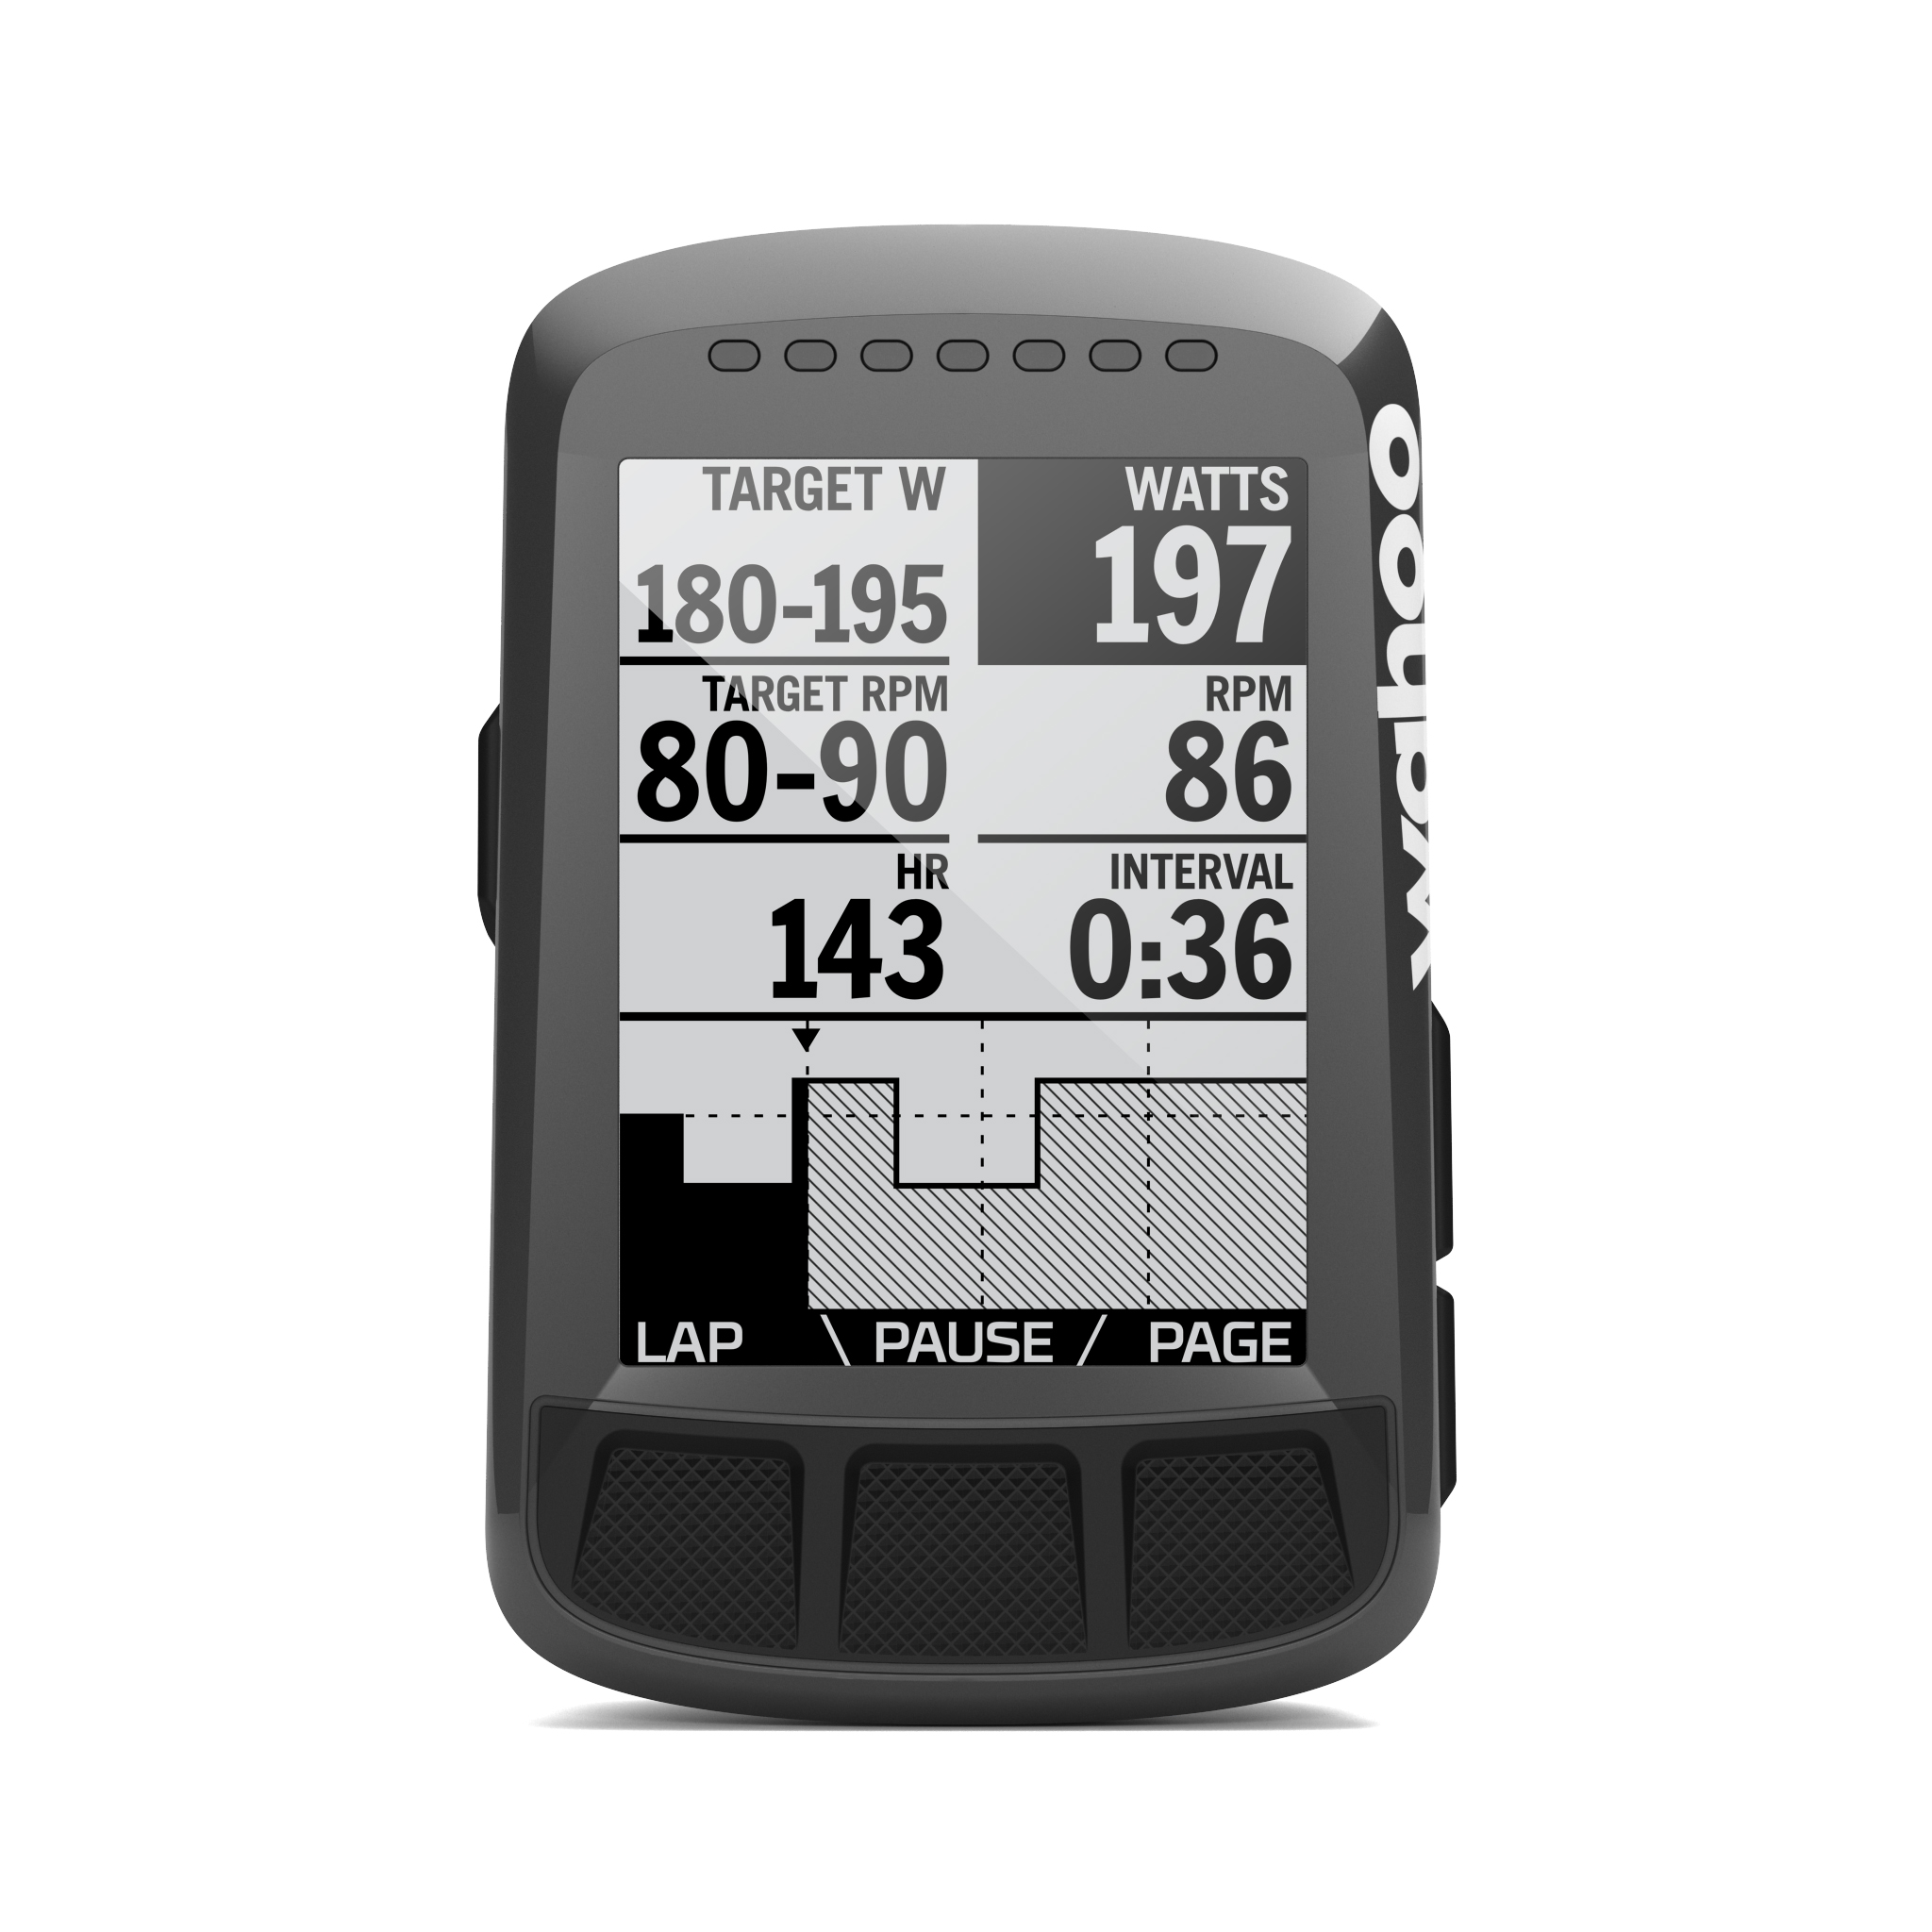 ELEMNT  BOLT - Created in collaboration with the best minds in cycling aerodynamics, ELEMNT BOLT offers the power and simplicity that originated with ELEMNT.